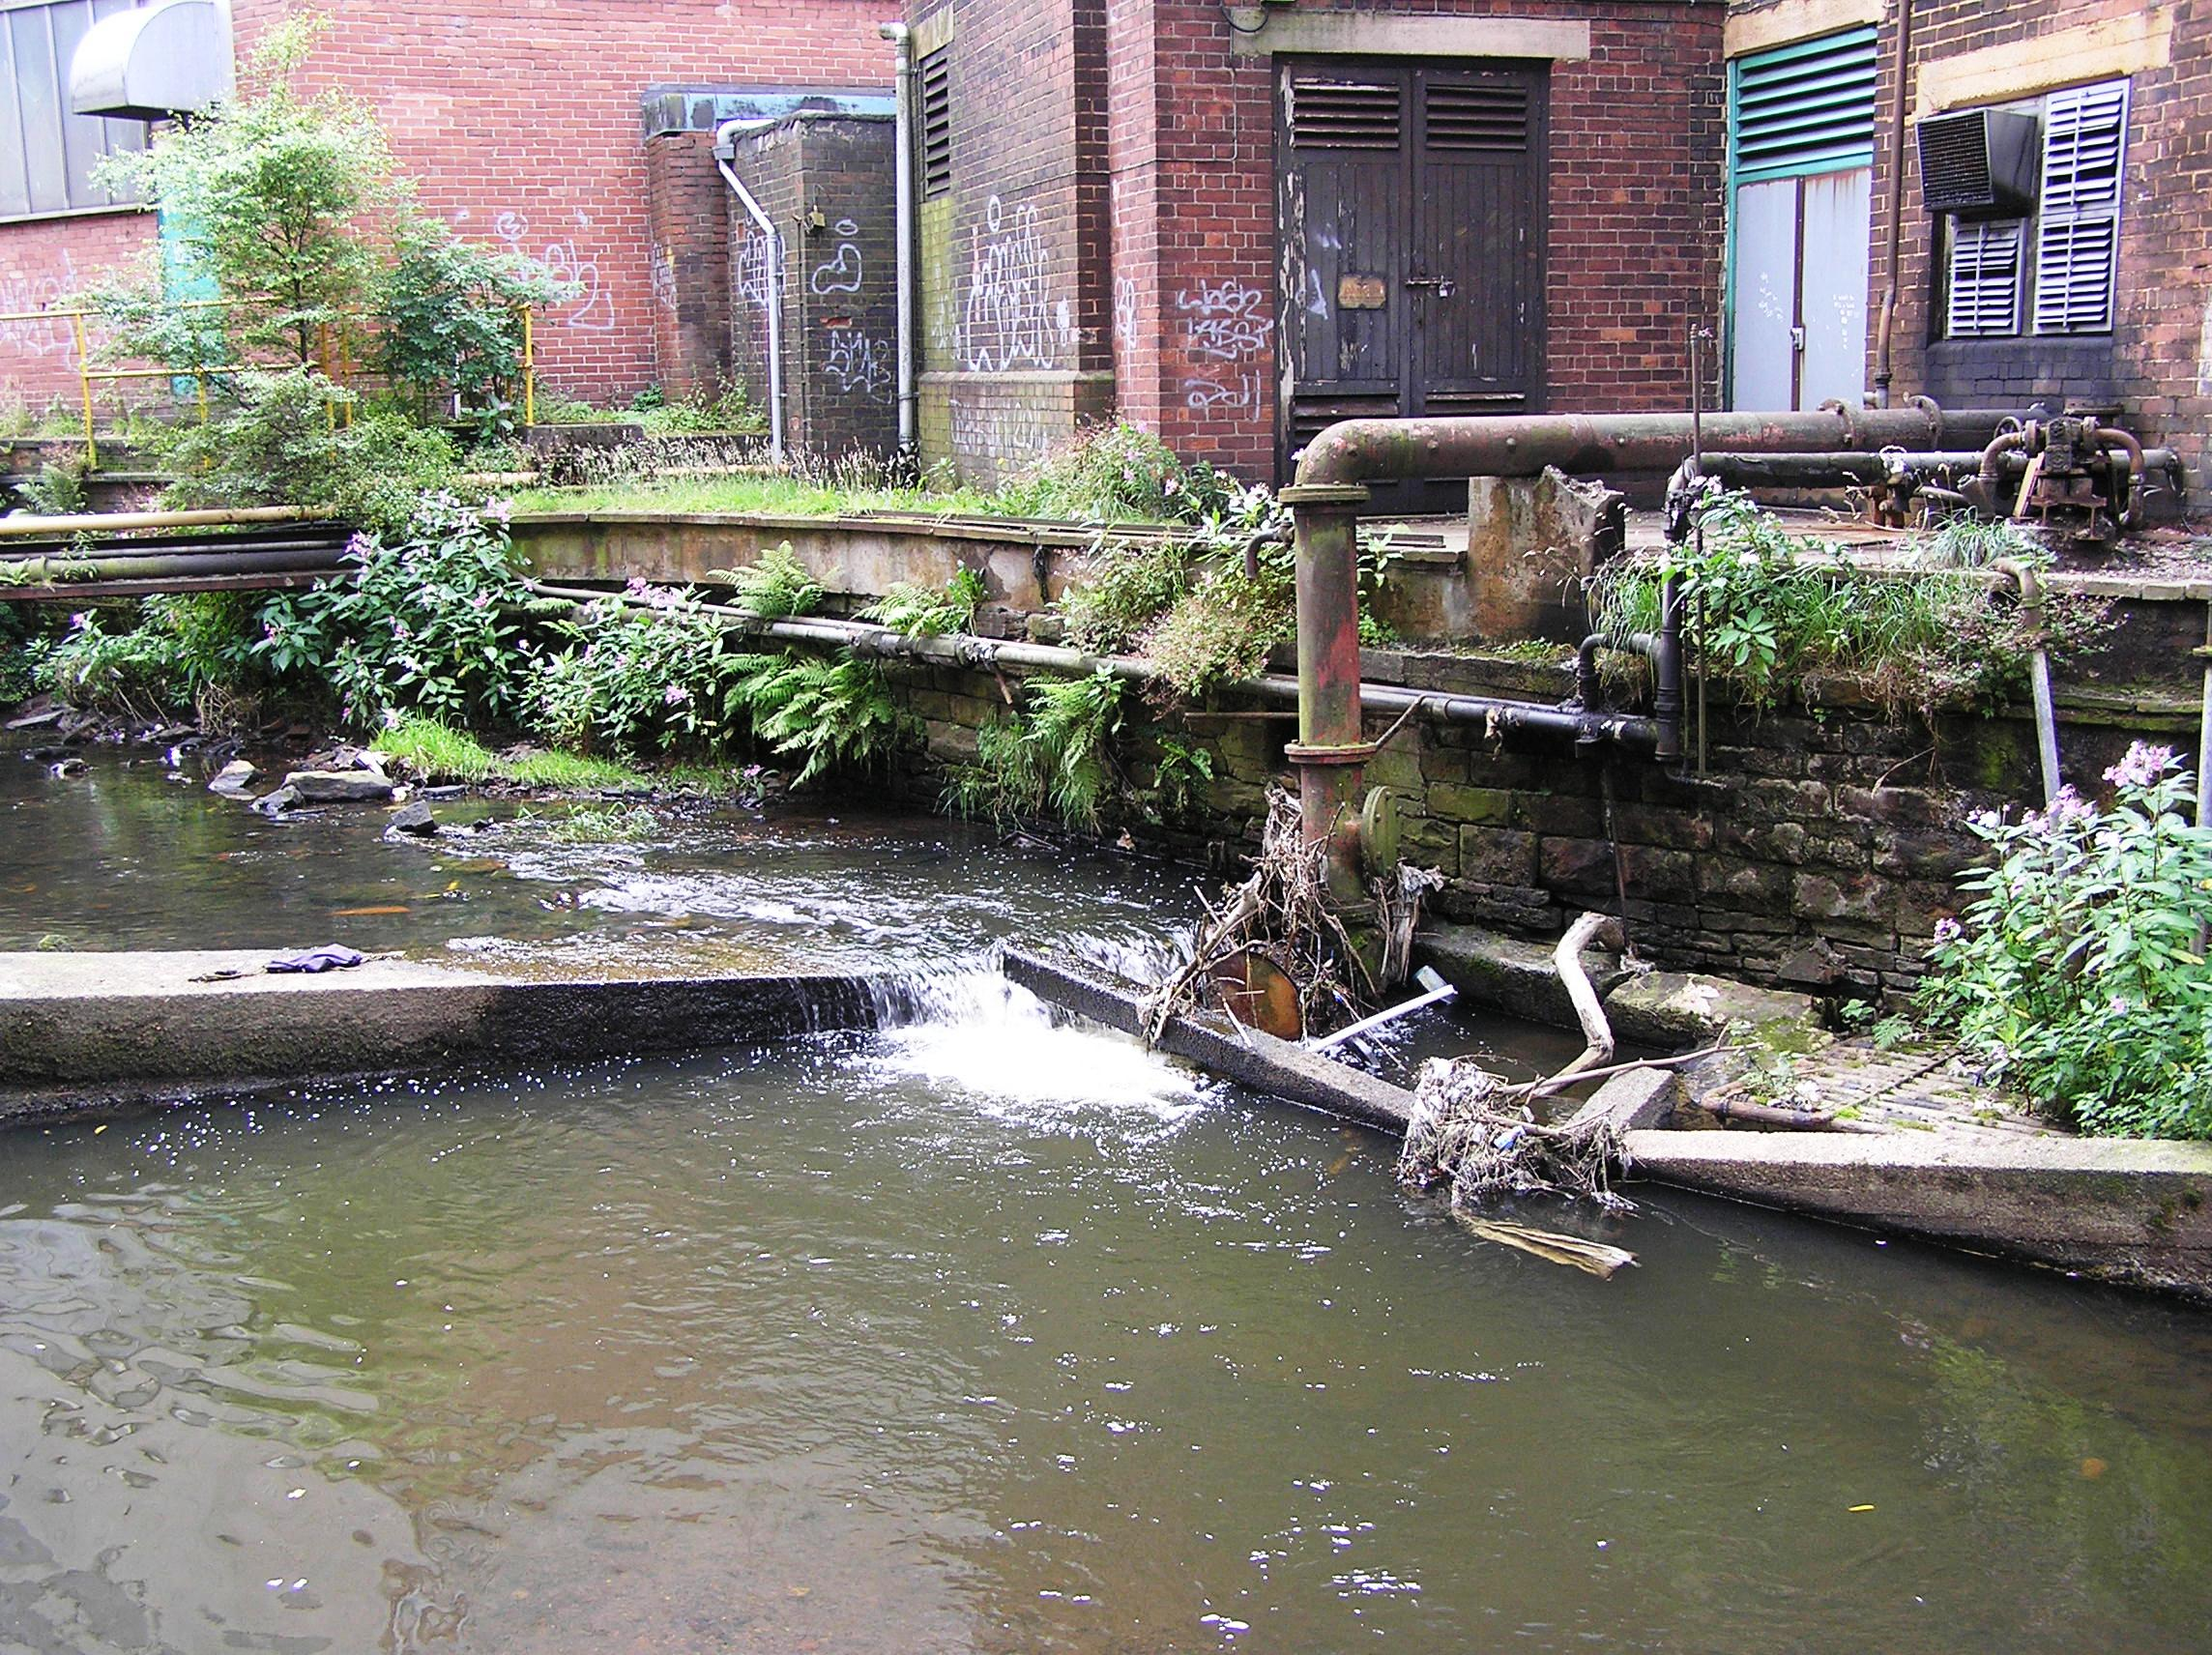 Project Update: Bringing the River Irk to Life (BRIL)